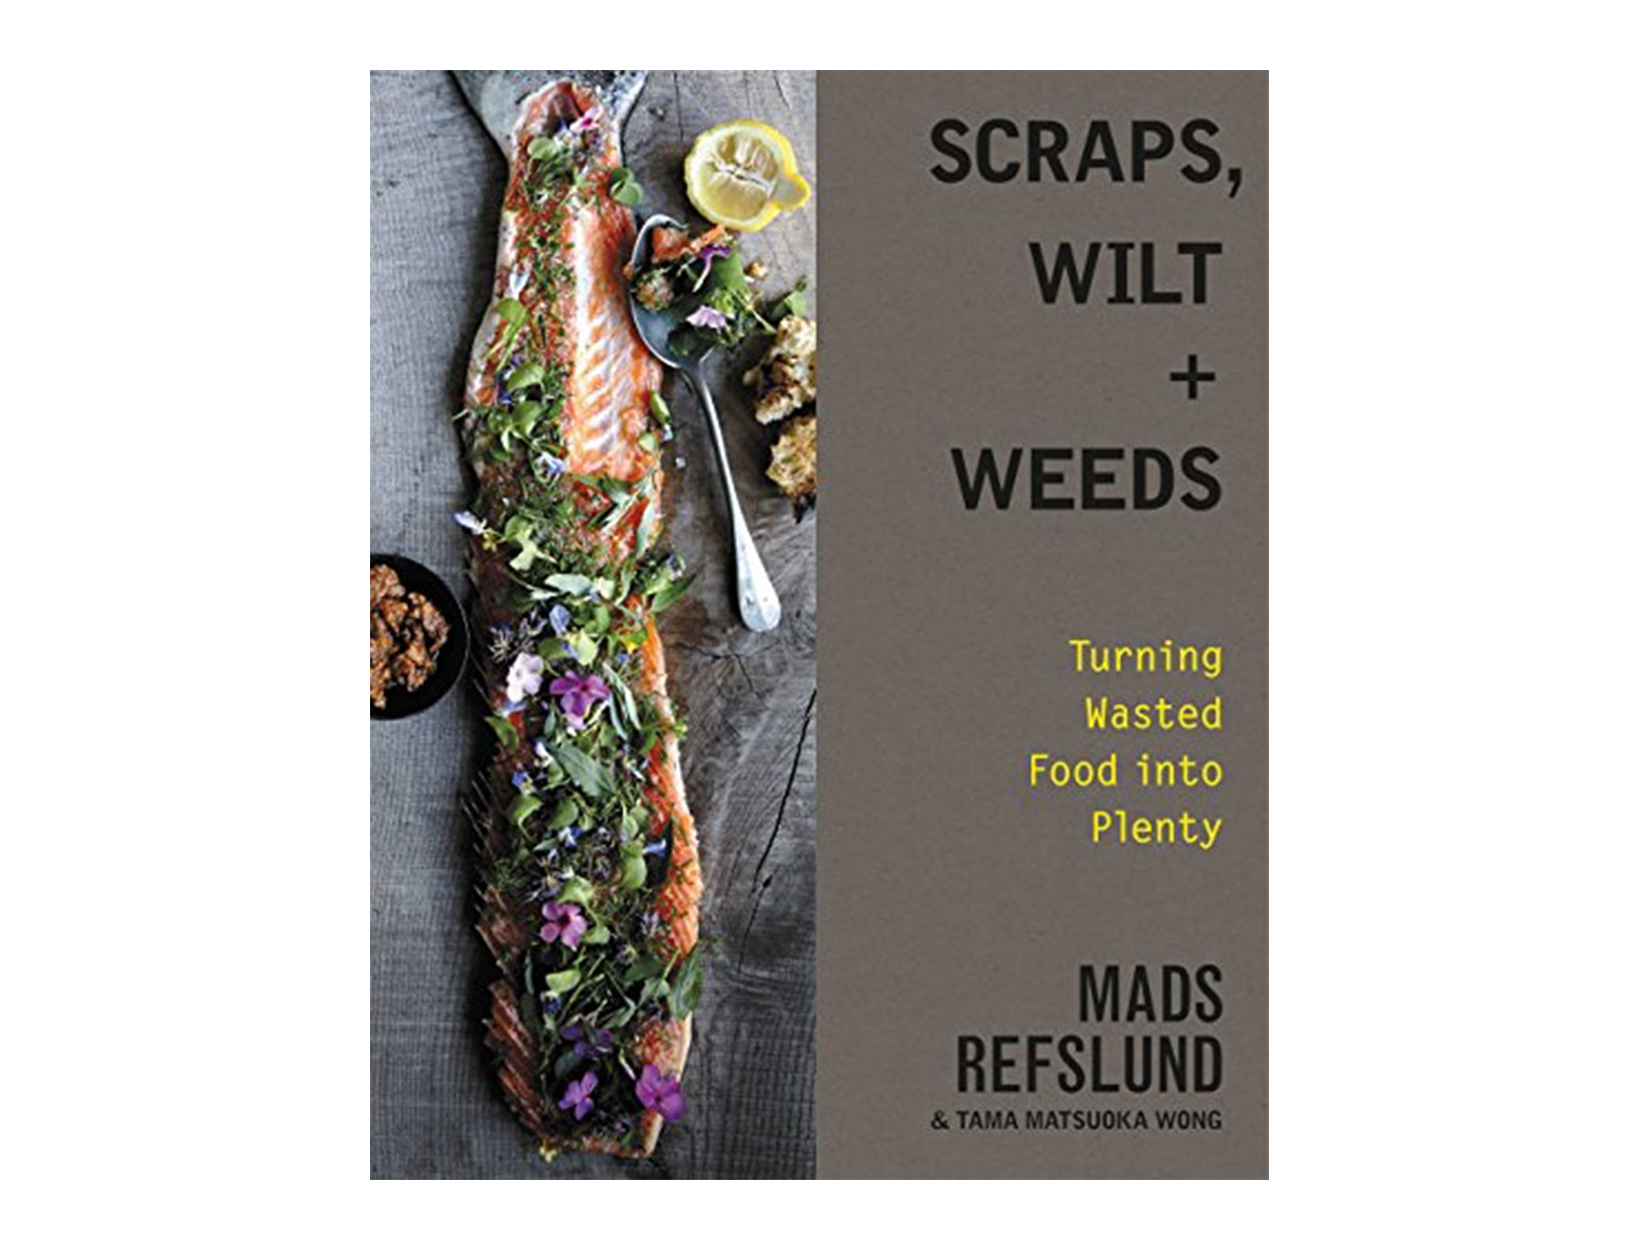 Scraps, Wilt & Weeds: Turning Wasted Food into Plenty by Mads Refslund